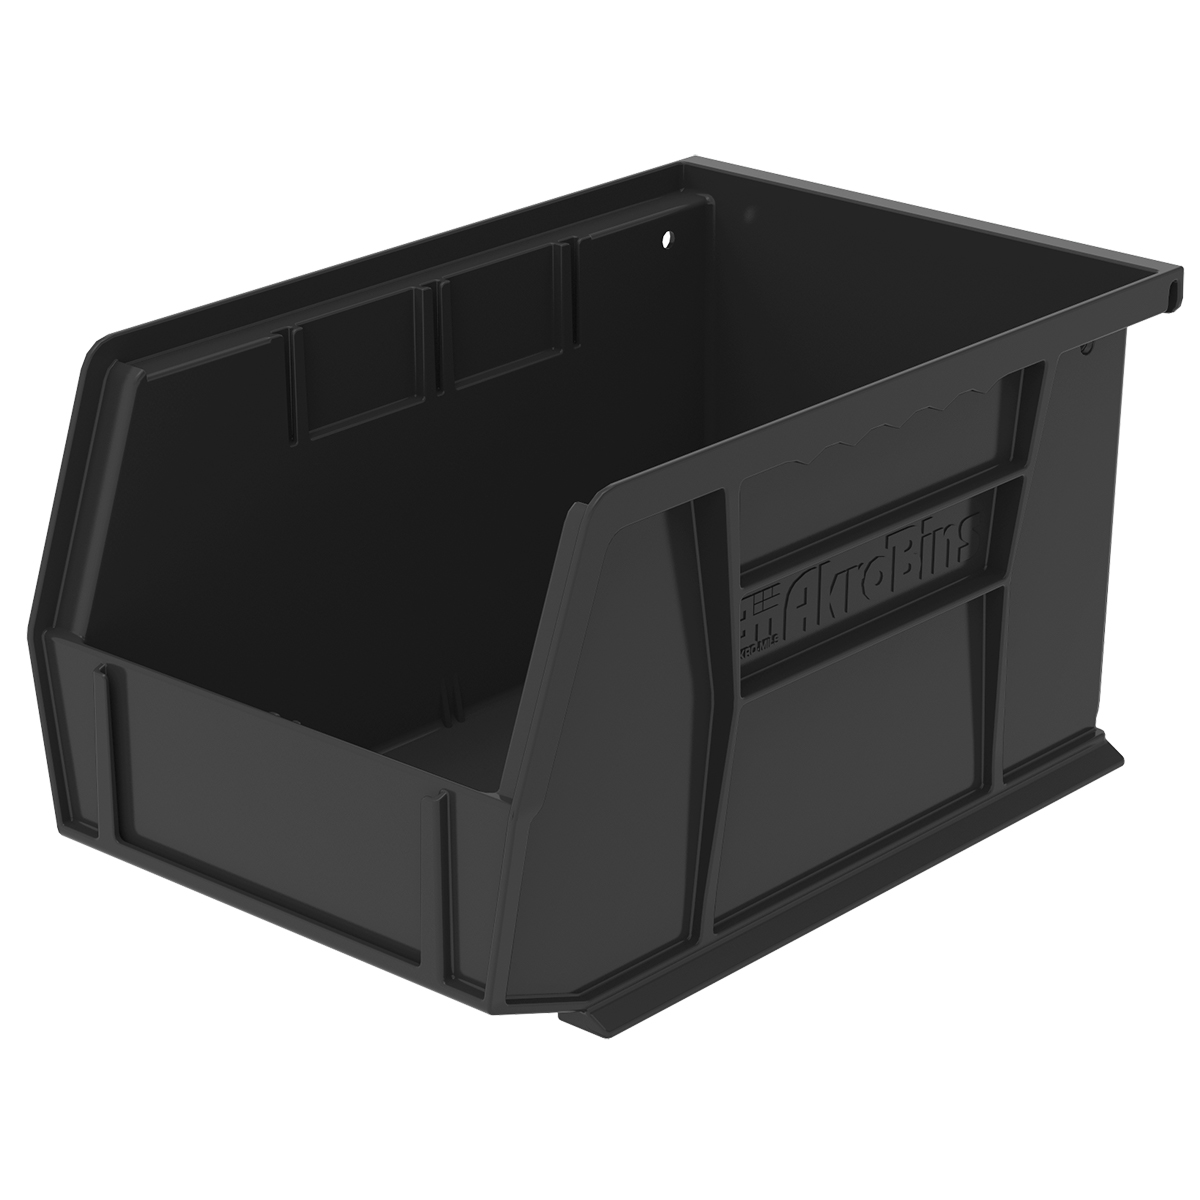 AkroBin 9-1/4 x 6 x 5, Black (30237BLACK).  This item sold in carton quantities of 12.